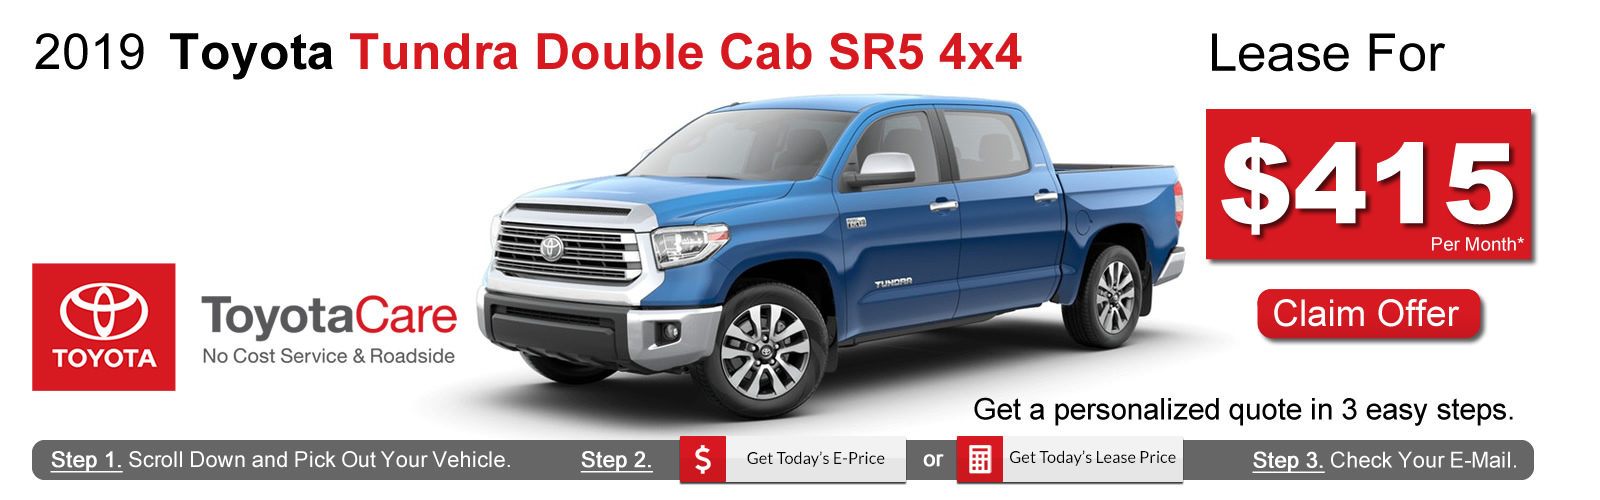 2019 Toyota Tundra Lease Deals near Boston, MA